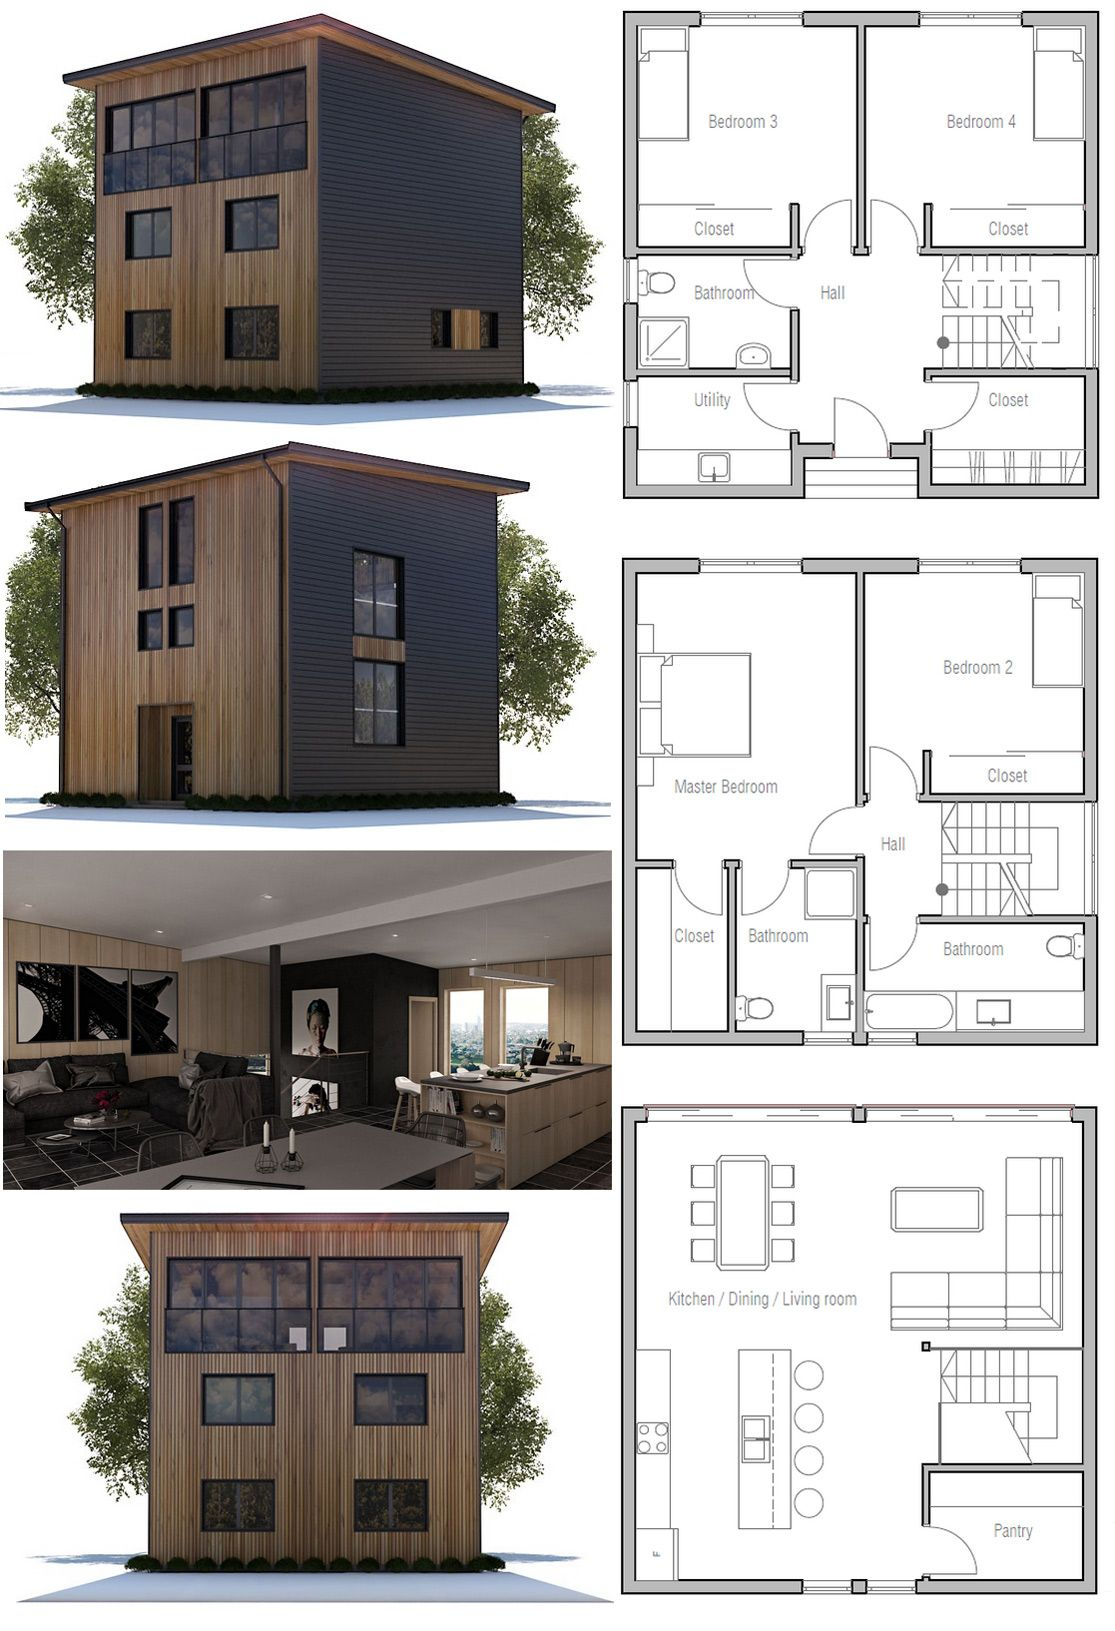 planta de casa house design small house plans house plans rh pinterest com